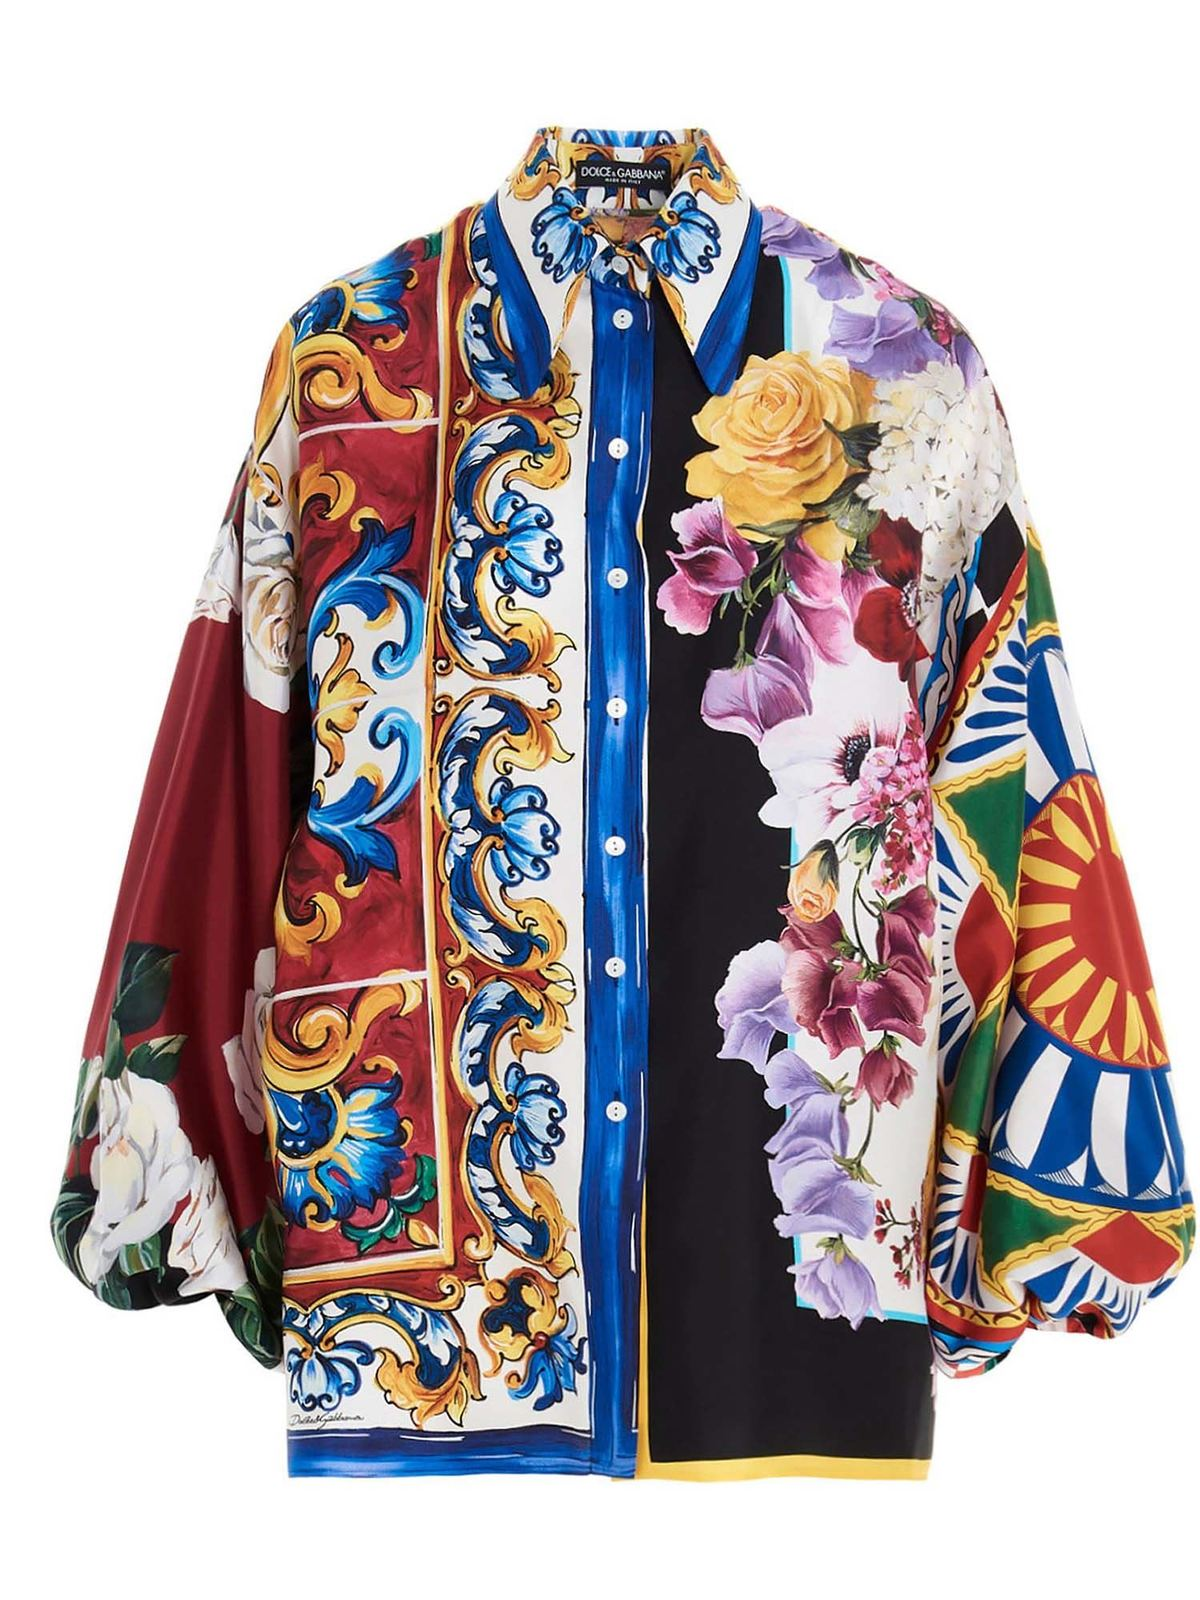 Dolce & Gabbana PATCHWORK SHIRT IN MULTICOLOR